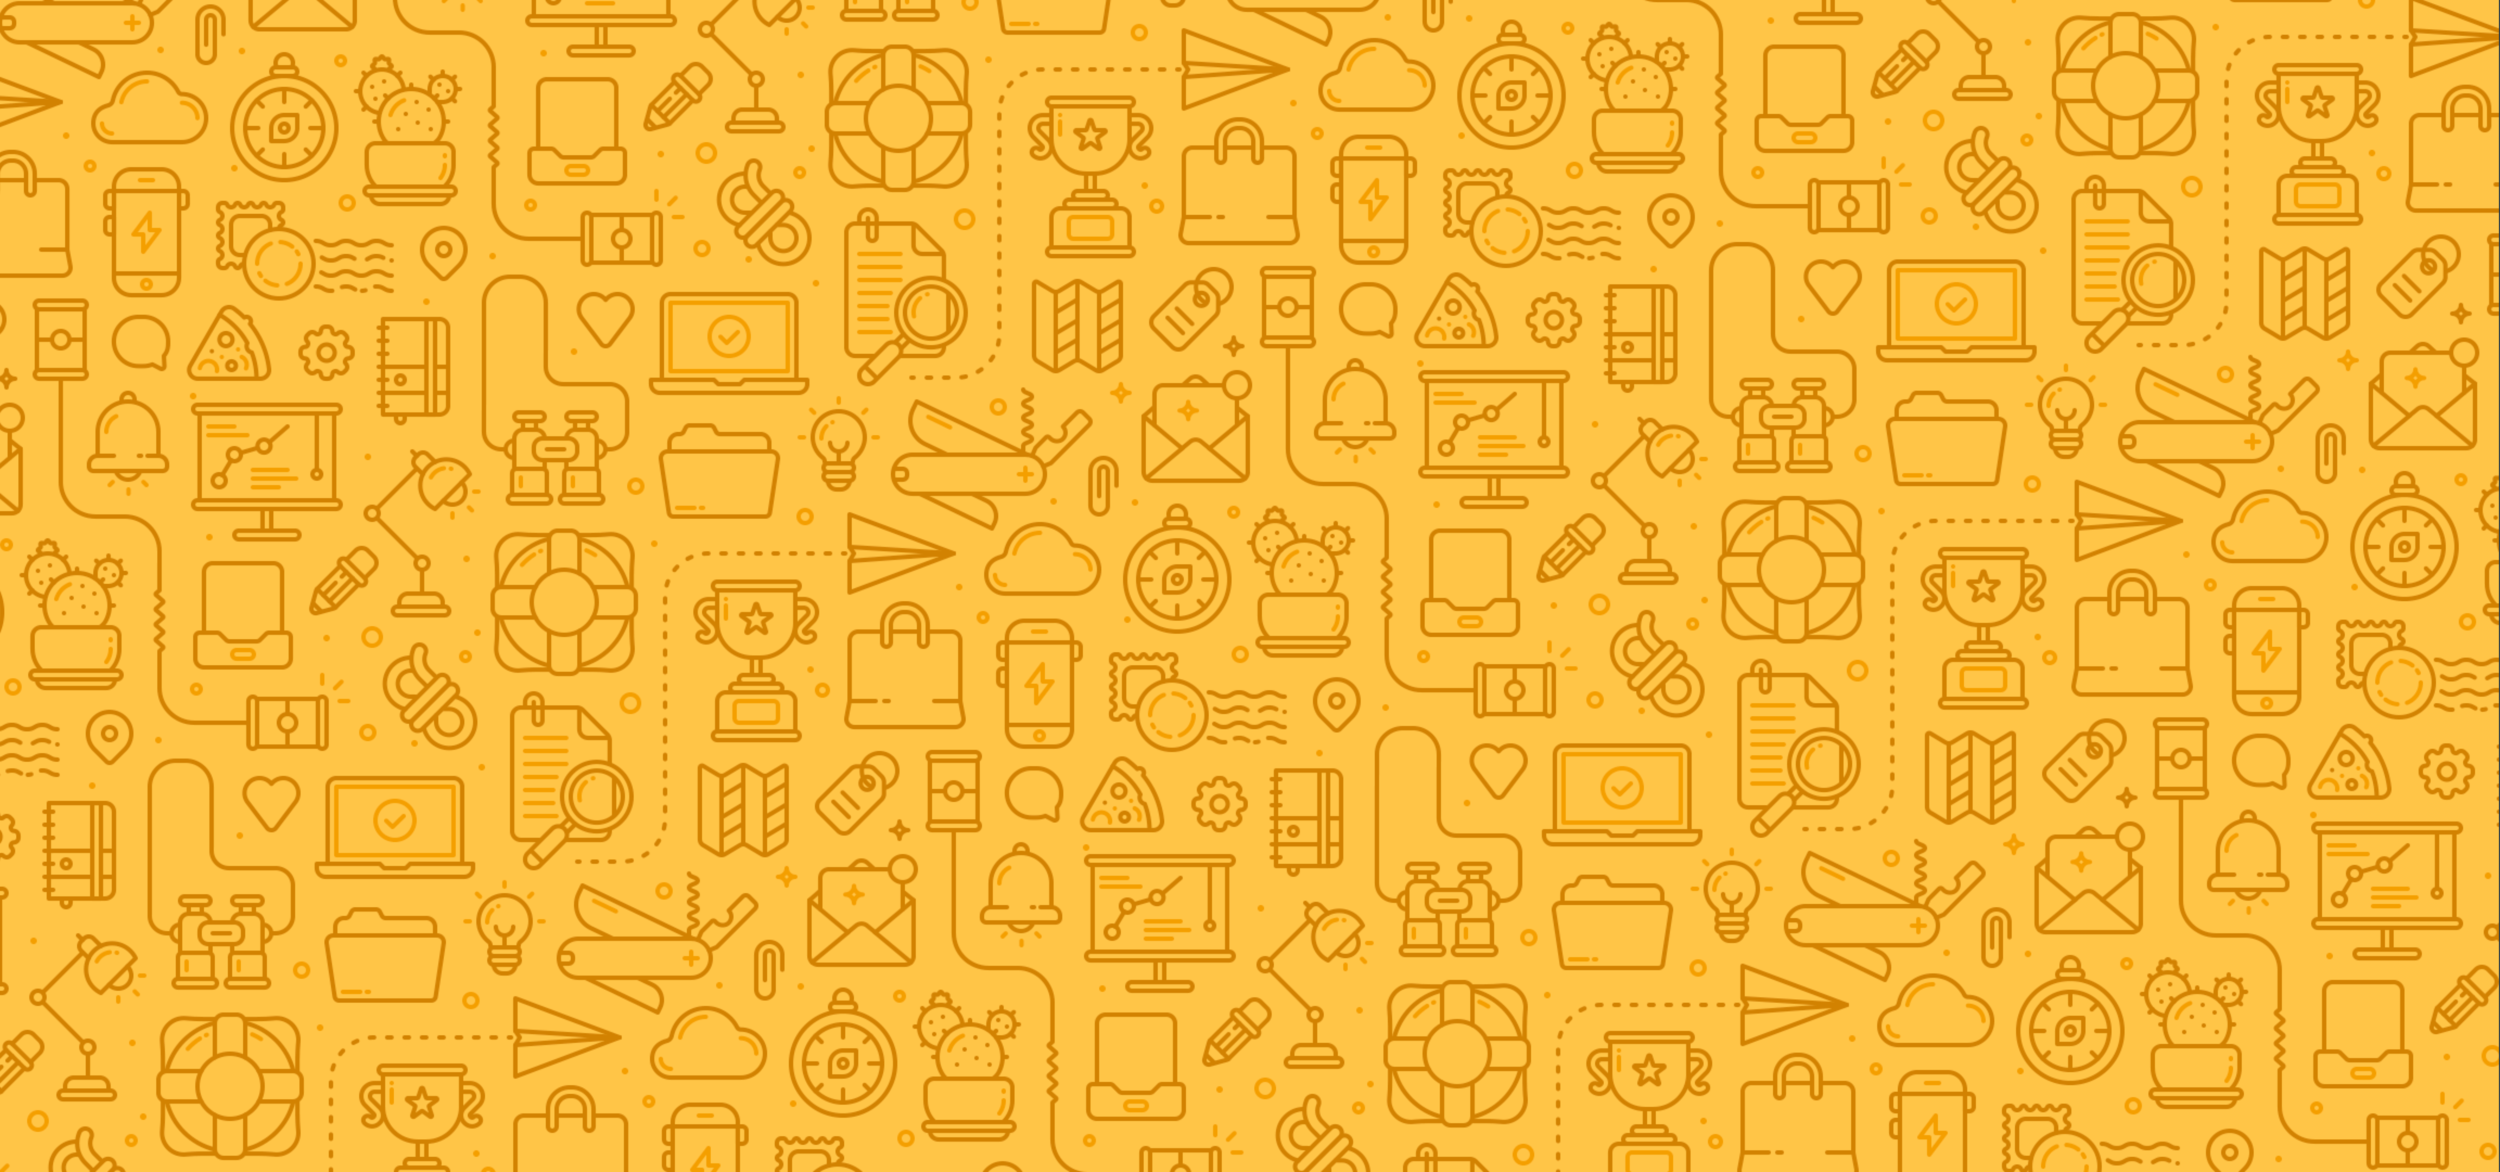 icon pattern@2x.png